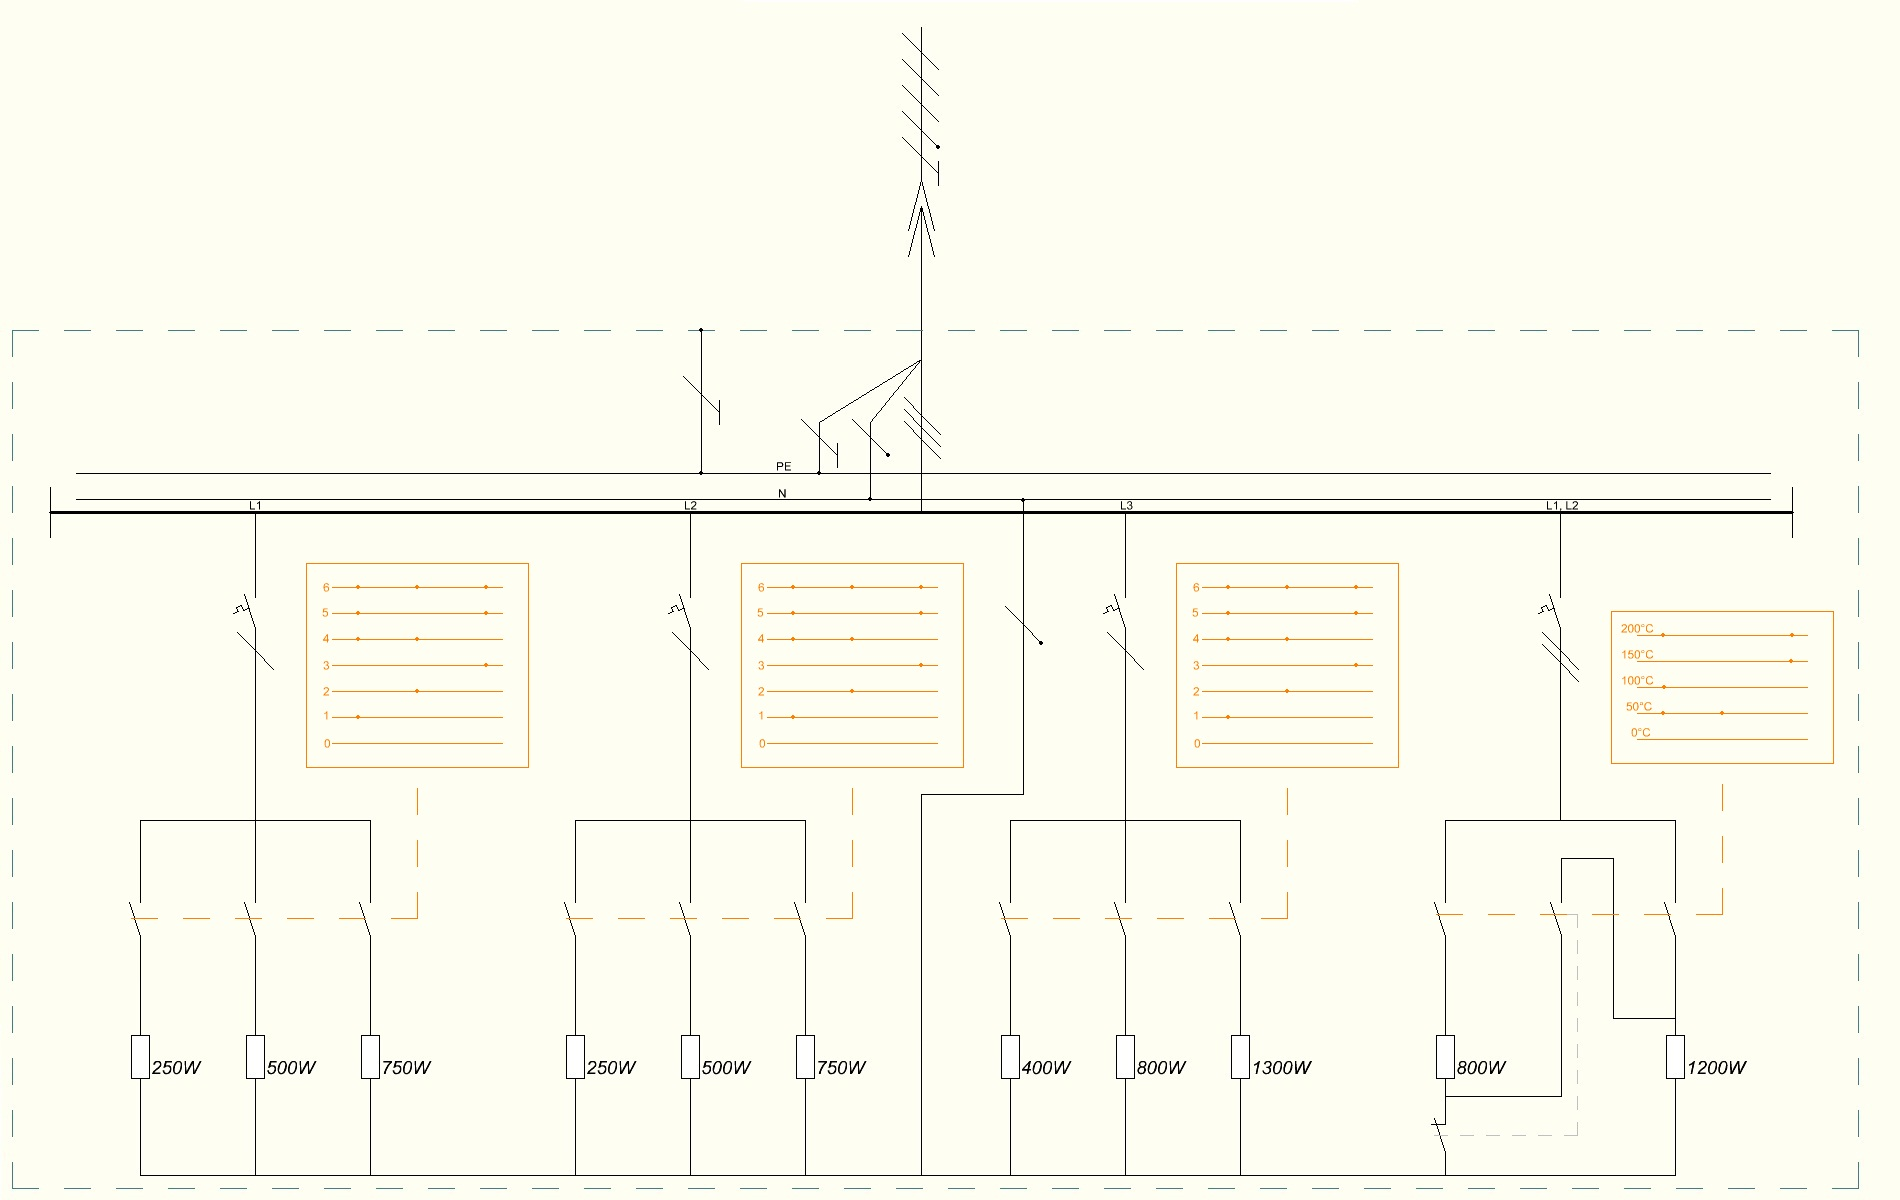 hight resolution of file schematic wiring diagram of electrical stove jpg